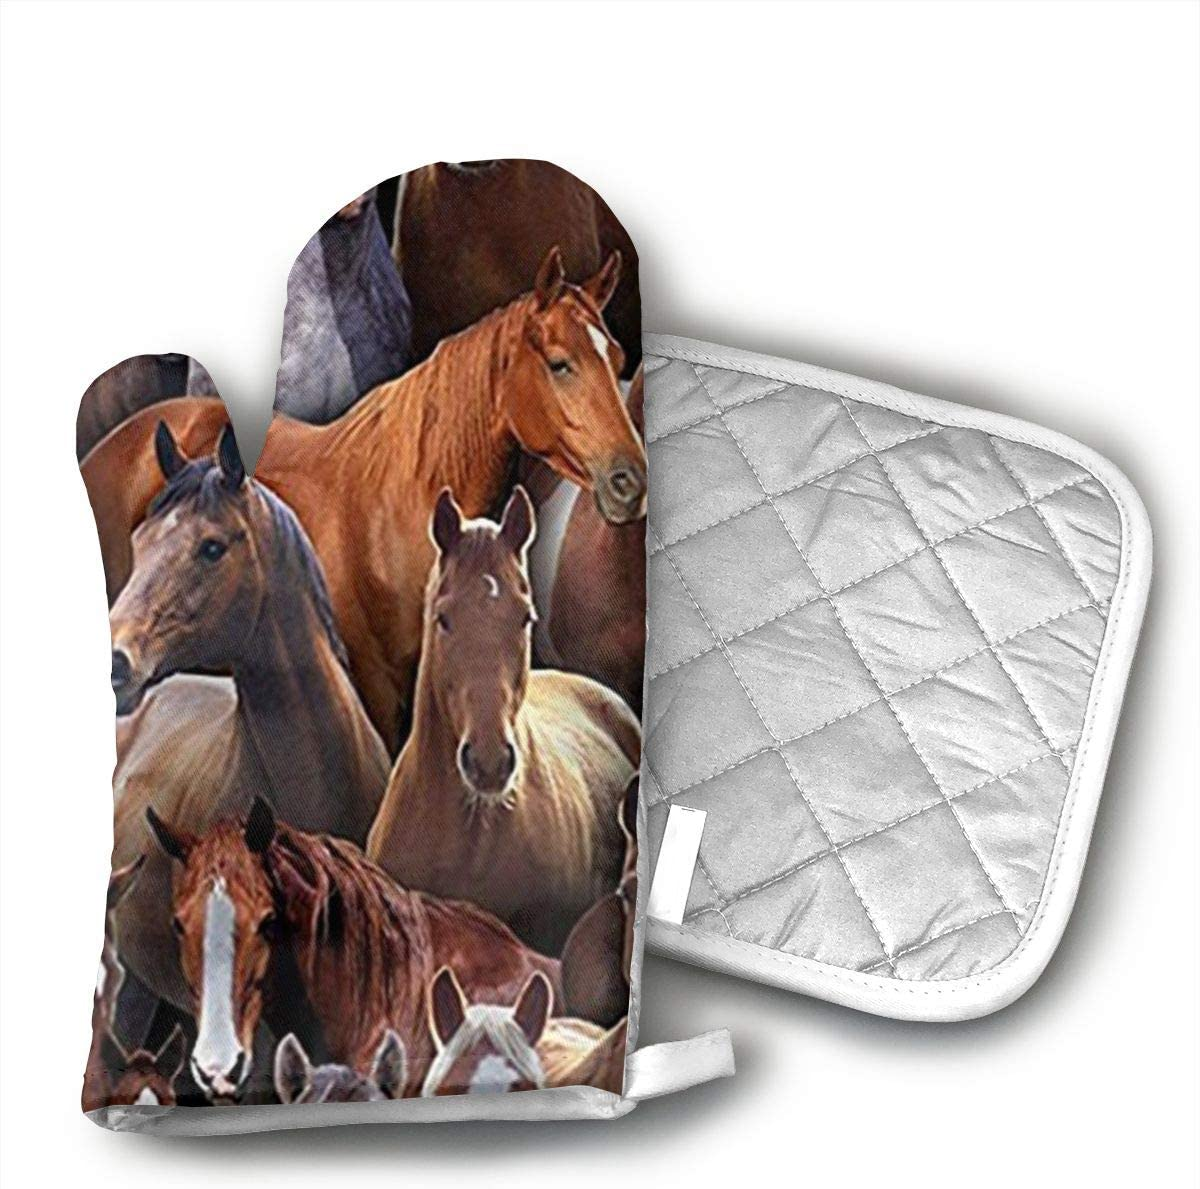 Teuwia Farm Life Black Horses Oven Mitts and Pot Holders Baking Oven Gloves Hot Pads Set Heat Resistant for Finger Hand Wrist Protection